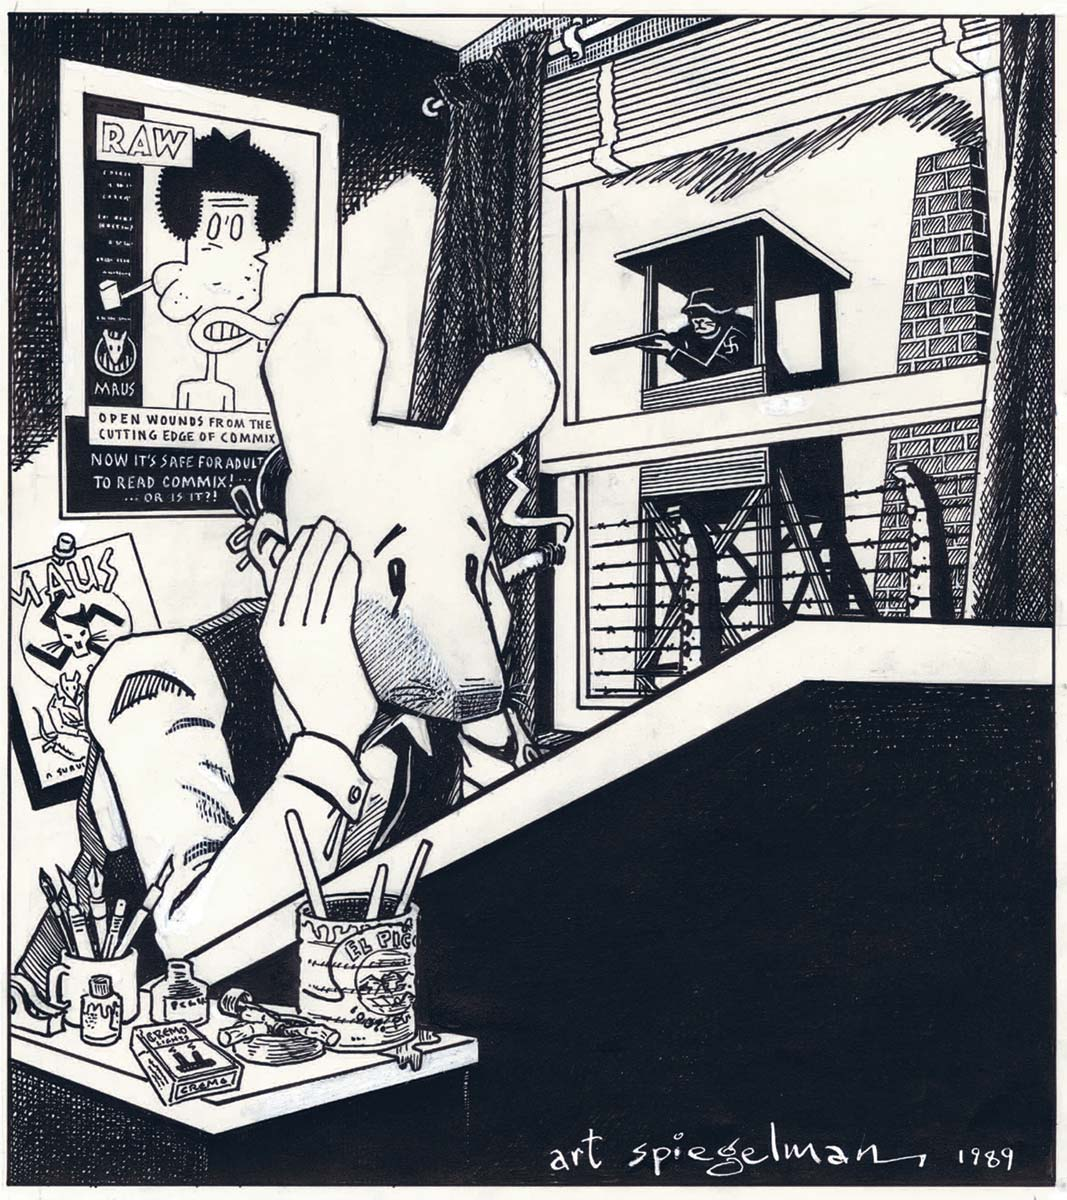 See a radiant retrospective of Art Spiegelman's comic (and not-so-comic) art